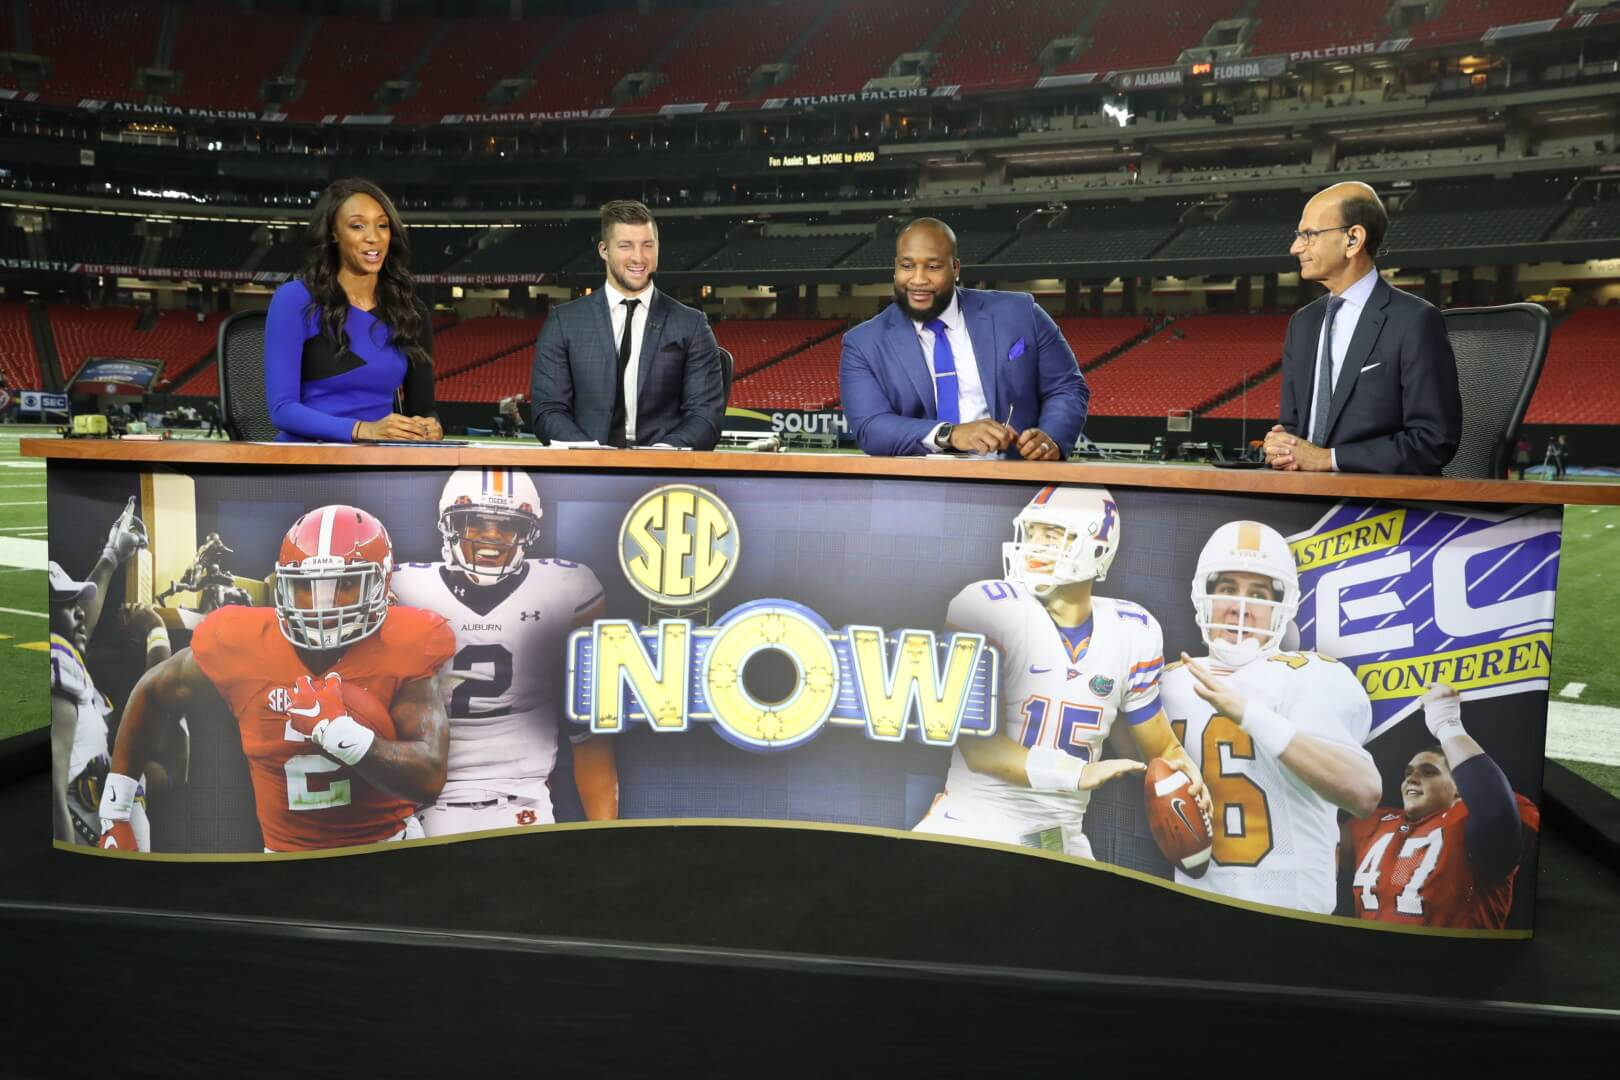 Maria Taylor, Tim Tebow, Marcus Spears and Paul Finebaum on the set of SEC Now during the 2016 SEC Championship